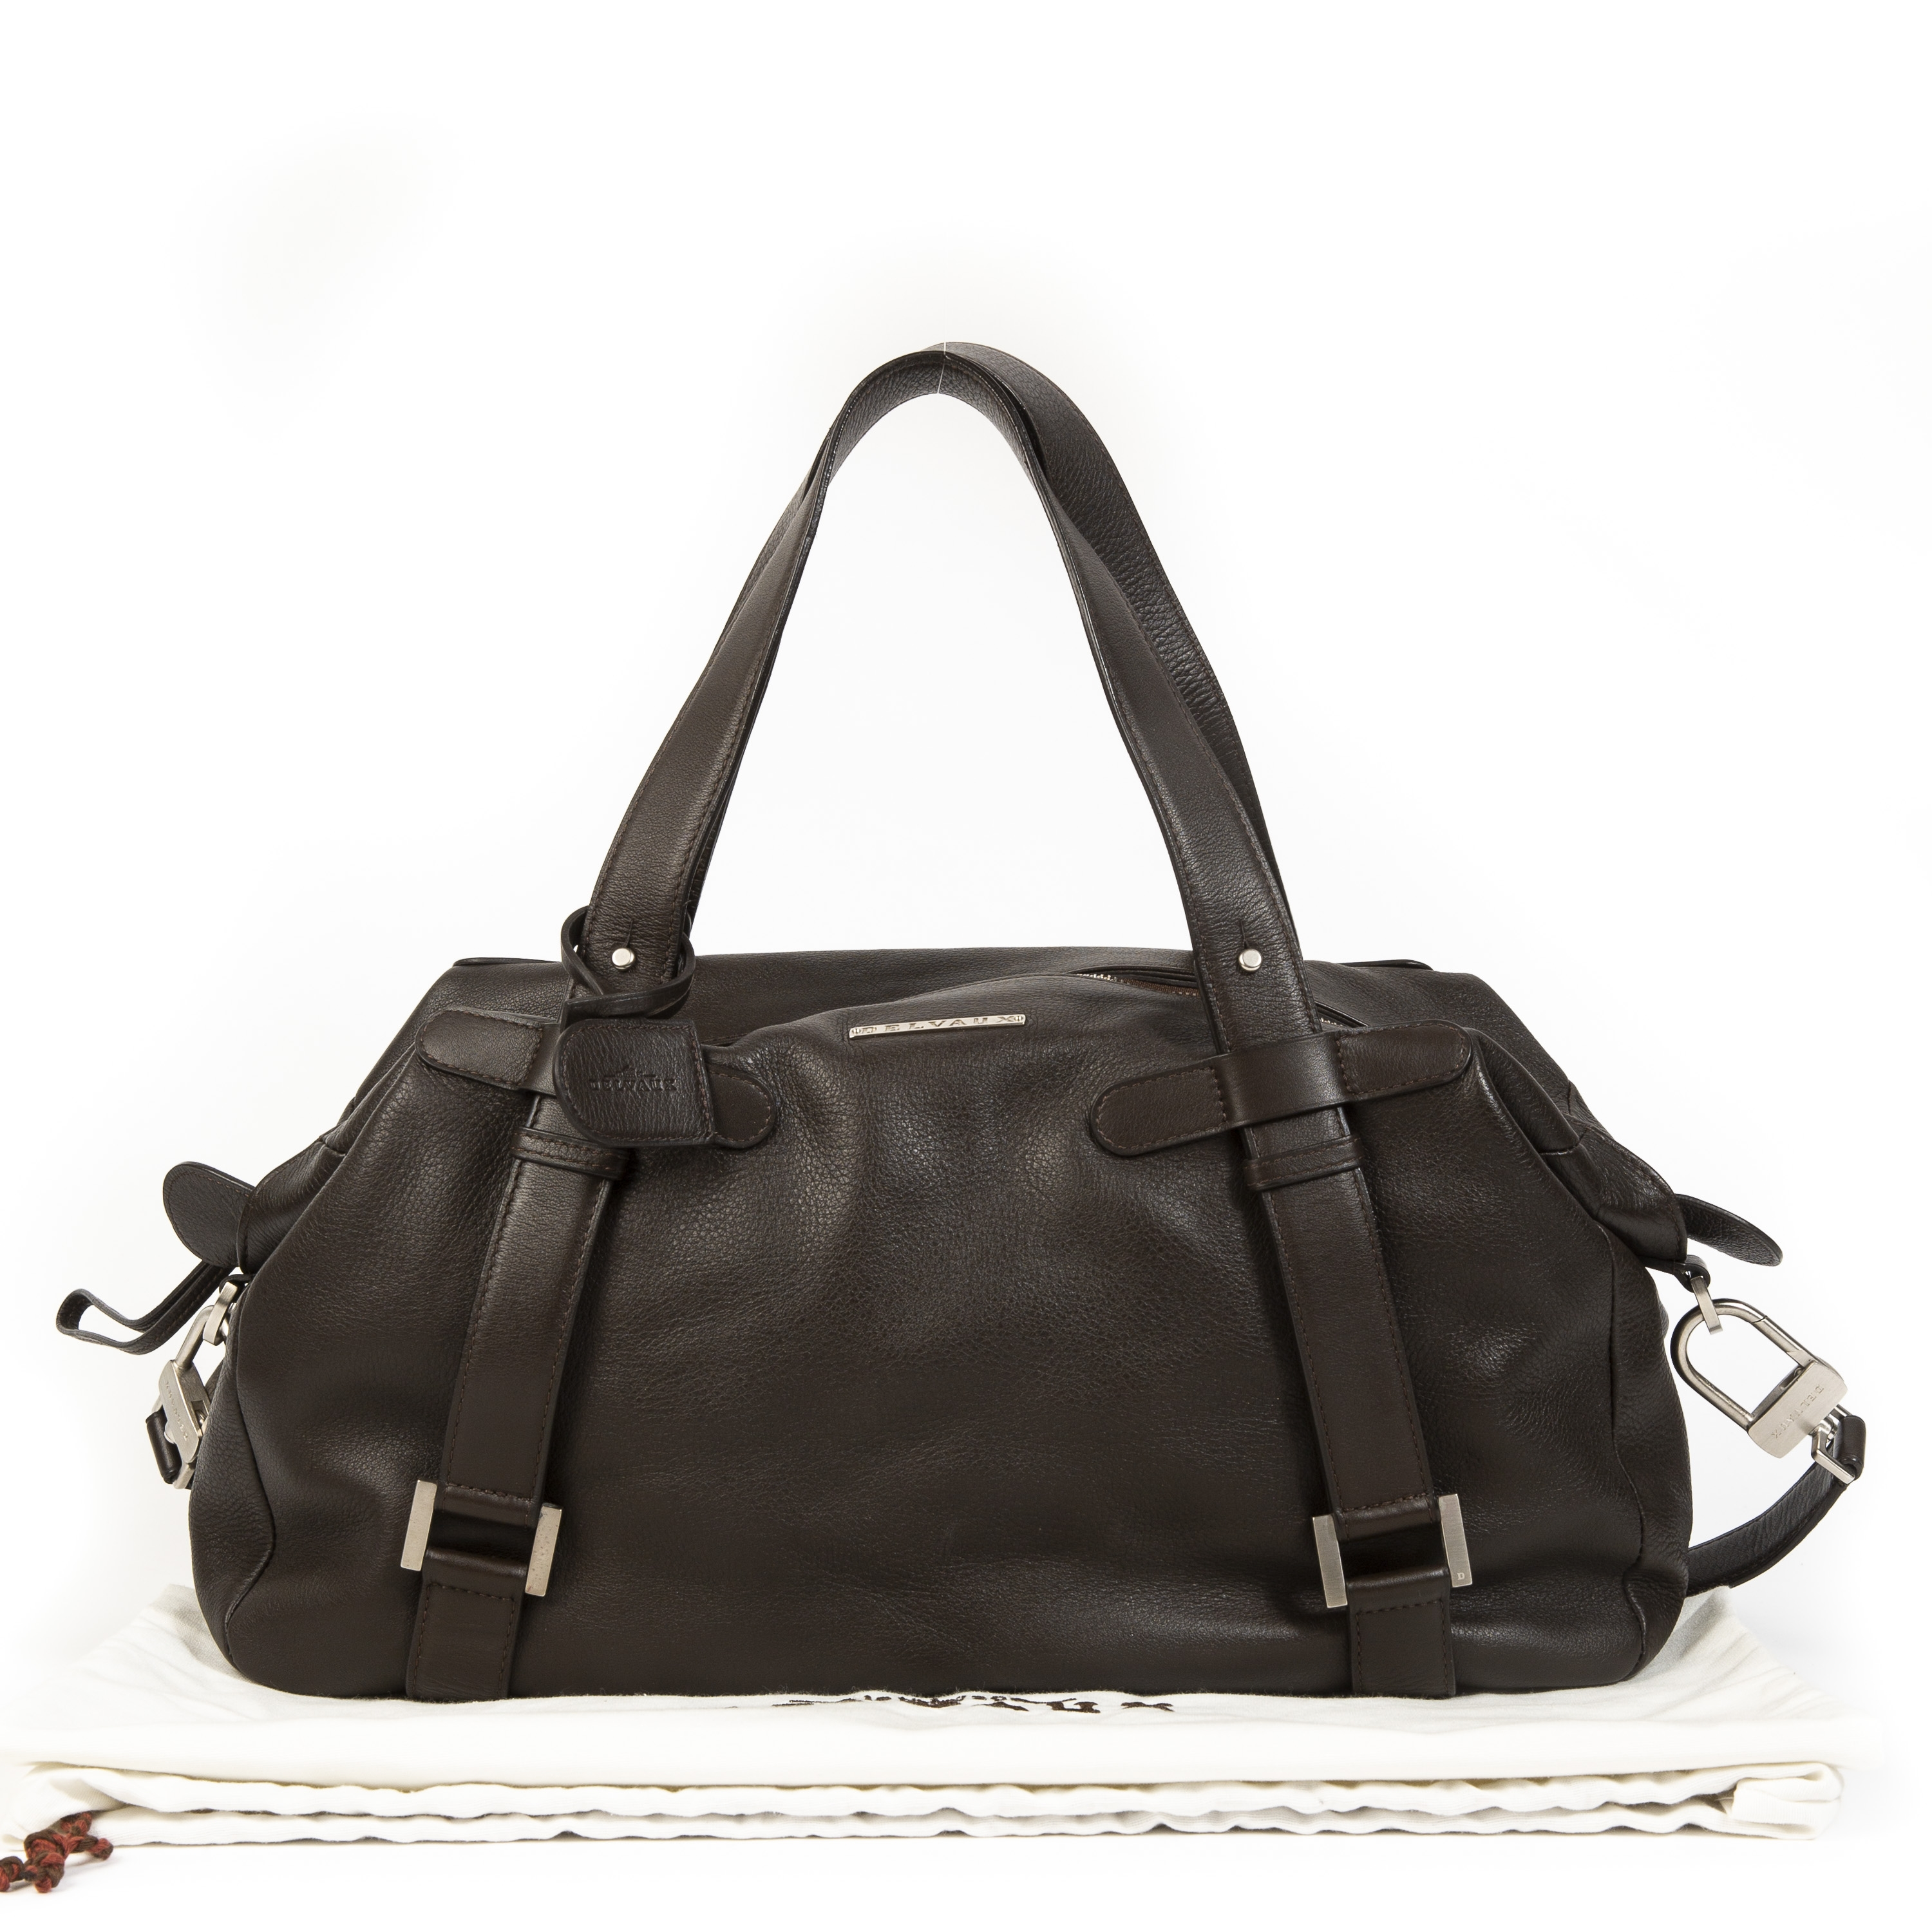 Buy authentic secondhand Delvaux bags at Labellov vintage webshop for the lowest price.